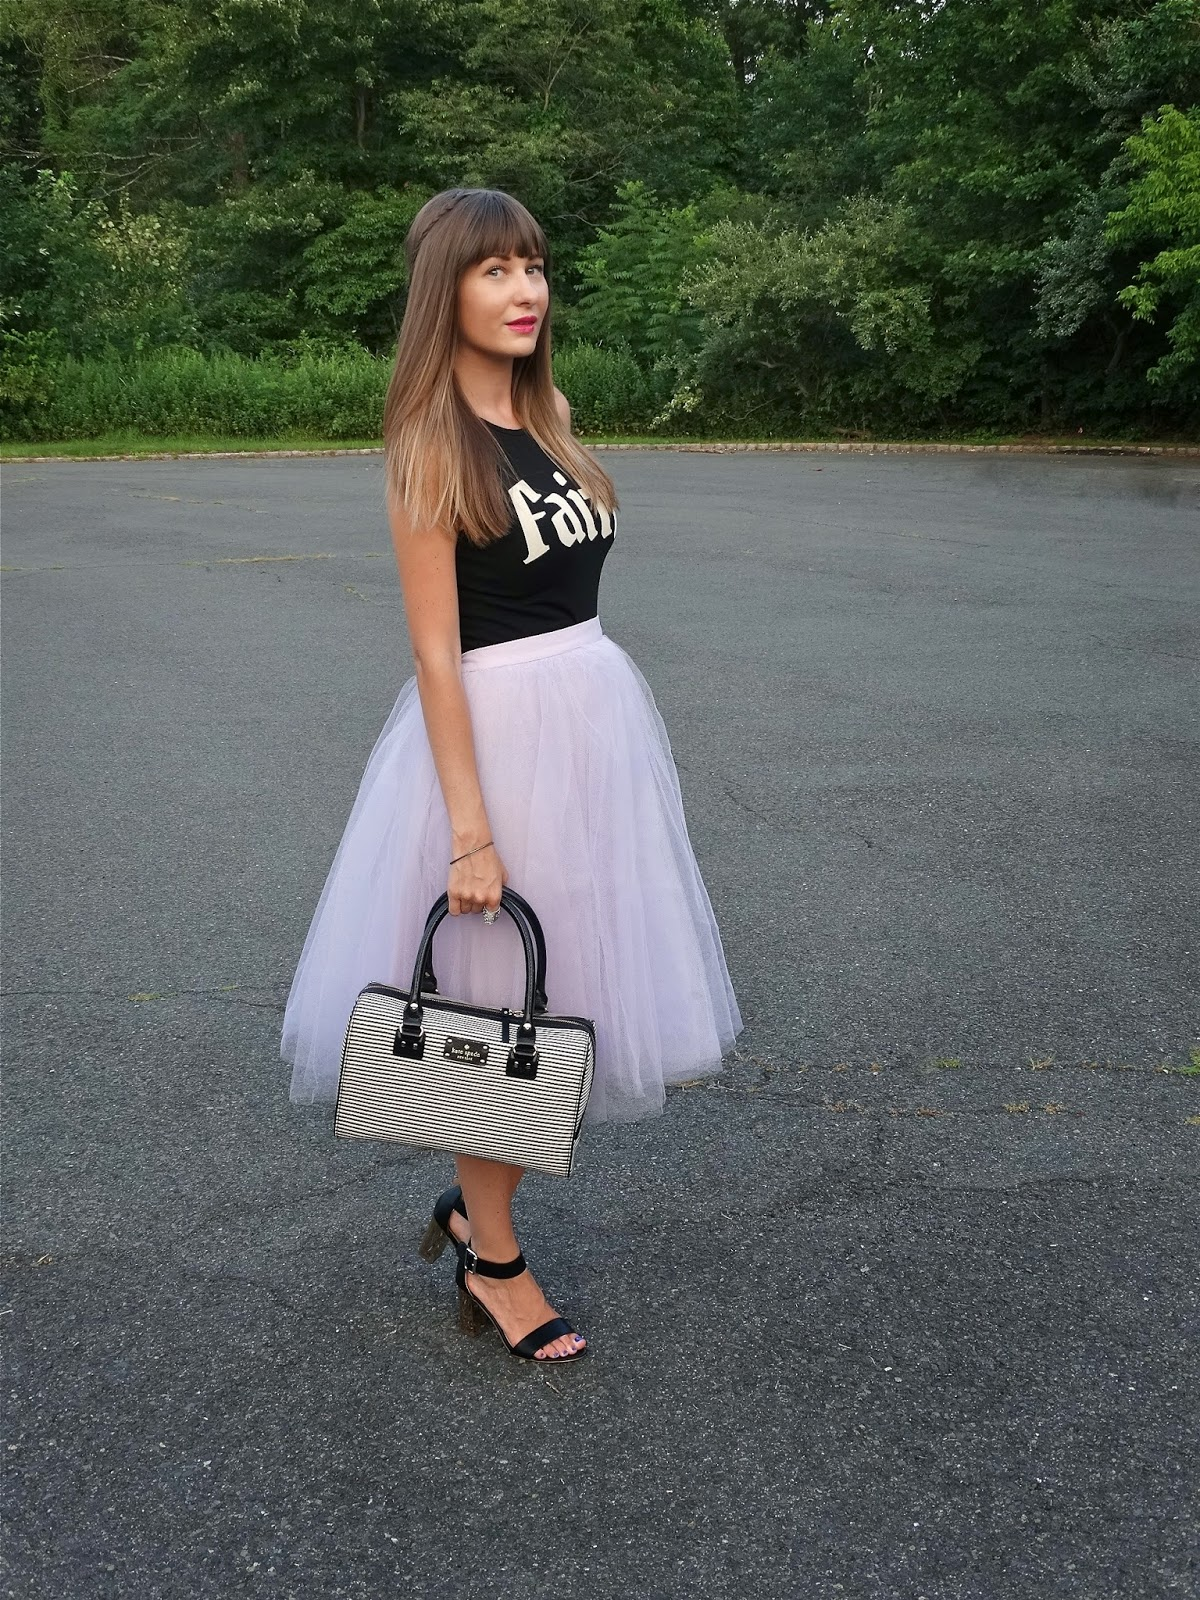 Tulle Skirt like Carrie Bradshaw Wore | House Of Jeffers | www.houseofjeffers.com